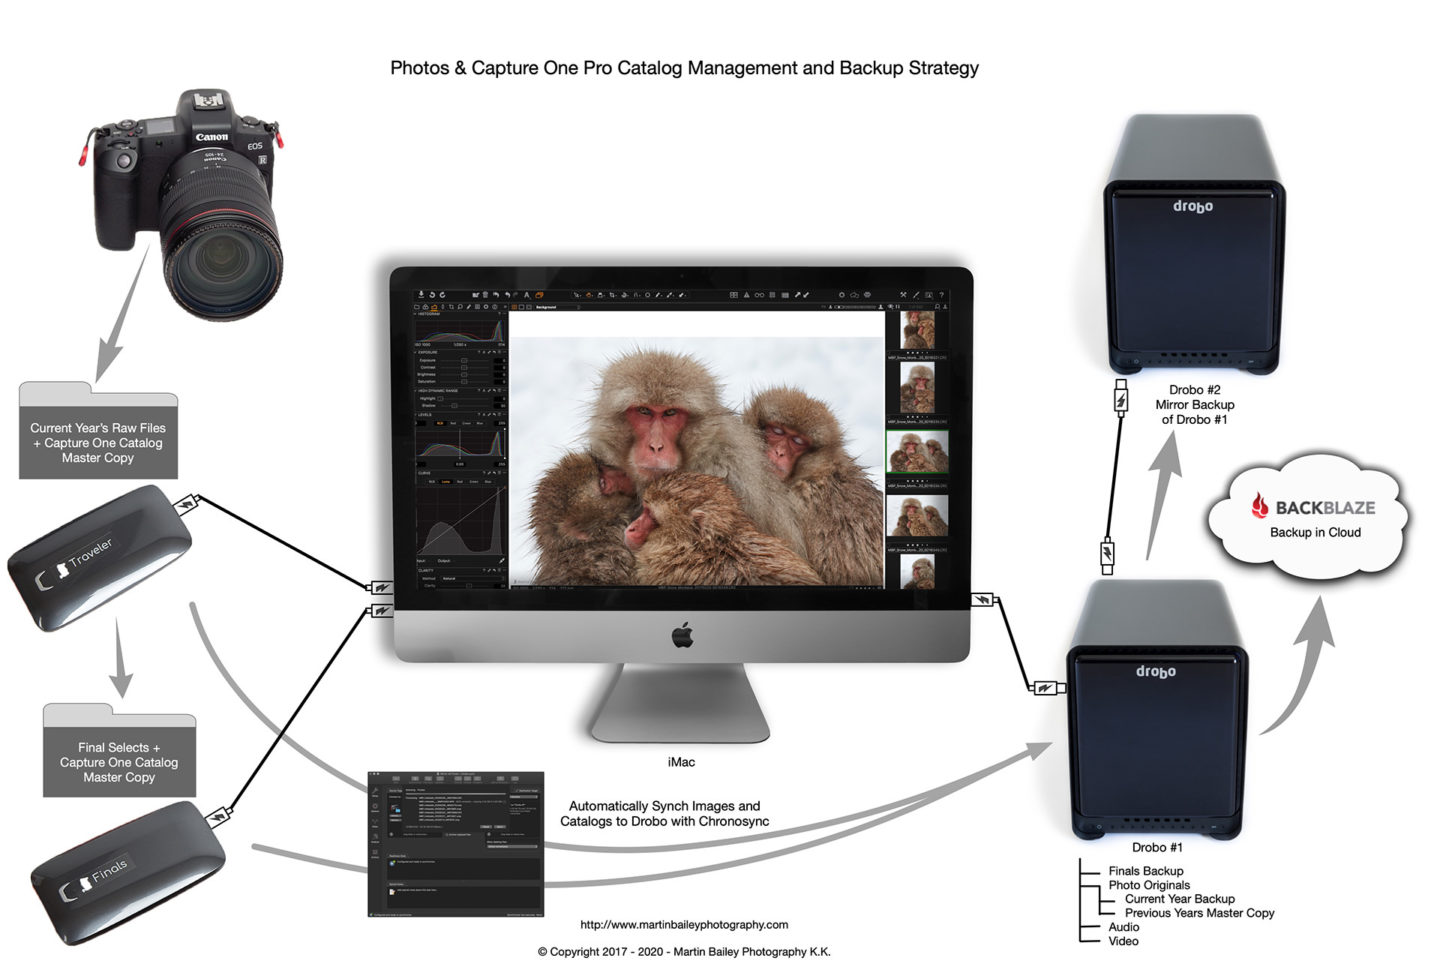 Image Flow and Backup Workflow